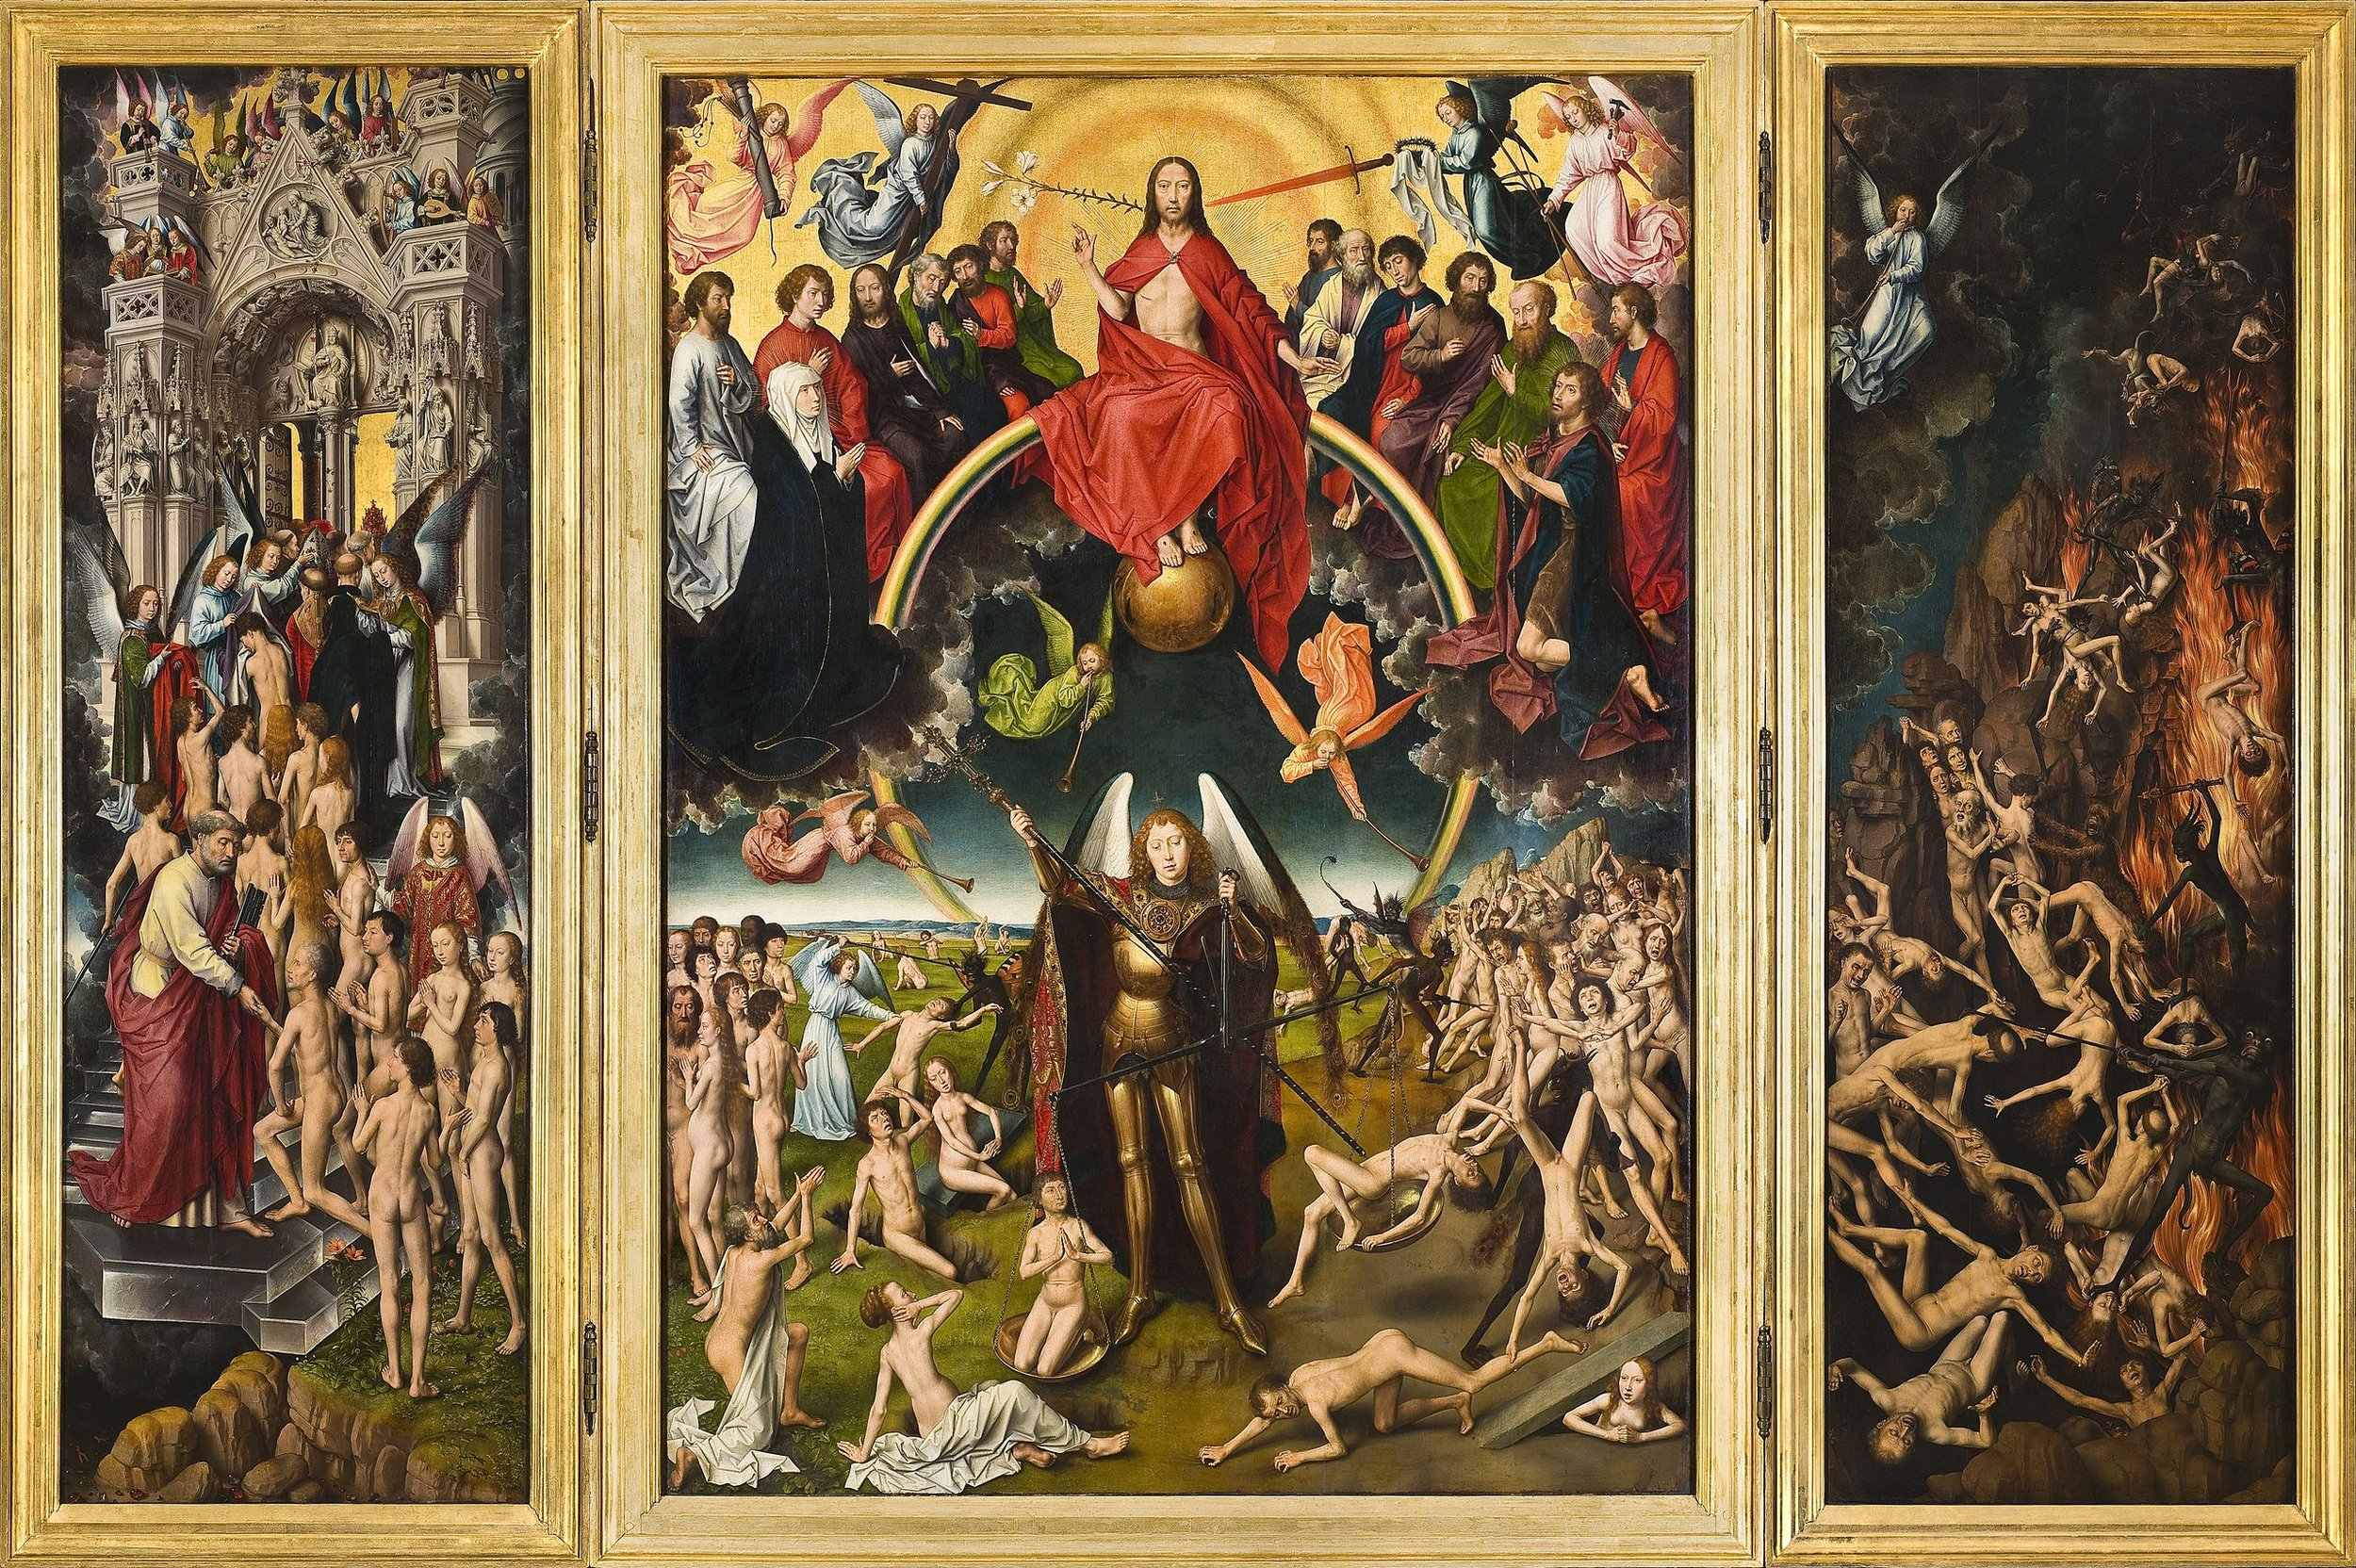 """The Last Judgment' by Hans Memling, 1466. The coming of Jesus at the last day will shake the earth, but in that shaking there will be redemption for his people. Advent teaches us to look for Jesus in the midst of calamity, to expect his saving power, and to prepare for the day when we will see him."